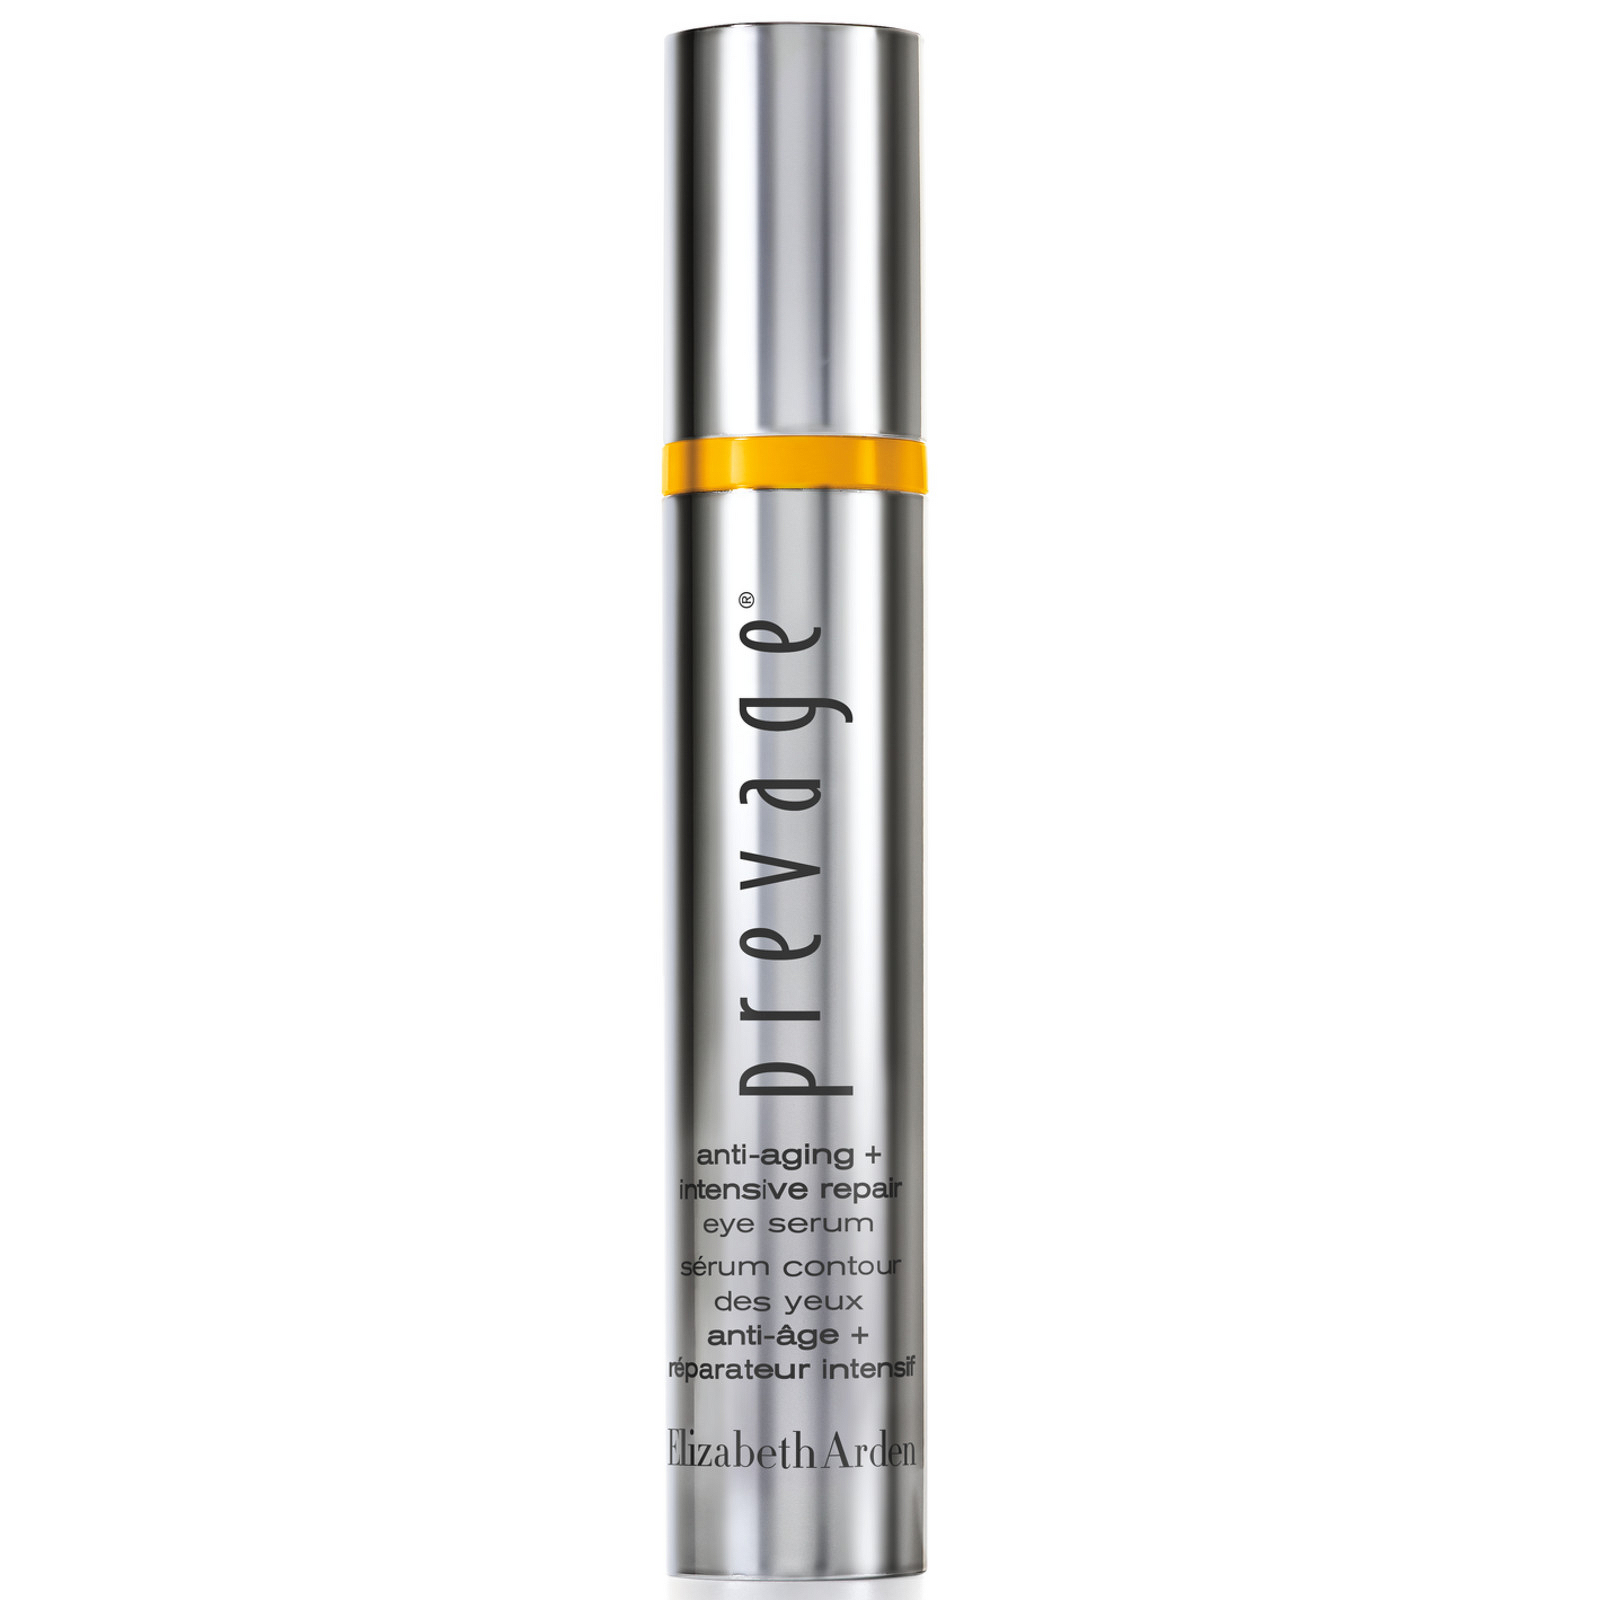 Elizabeth Arden Prevage Anti-Aging+ Intensive Repair Eye Serum 15ml / 0.5 fl.oz.